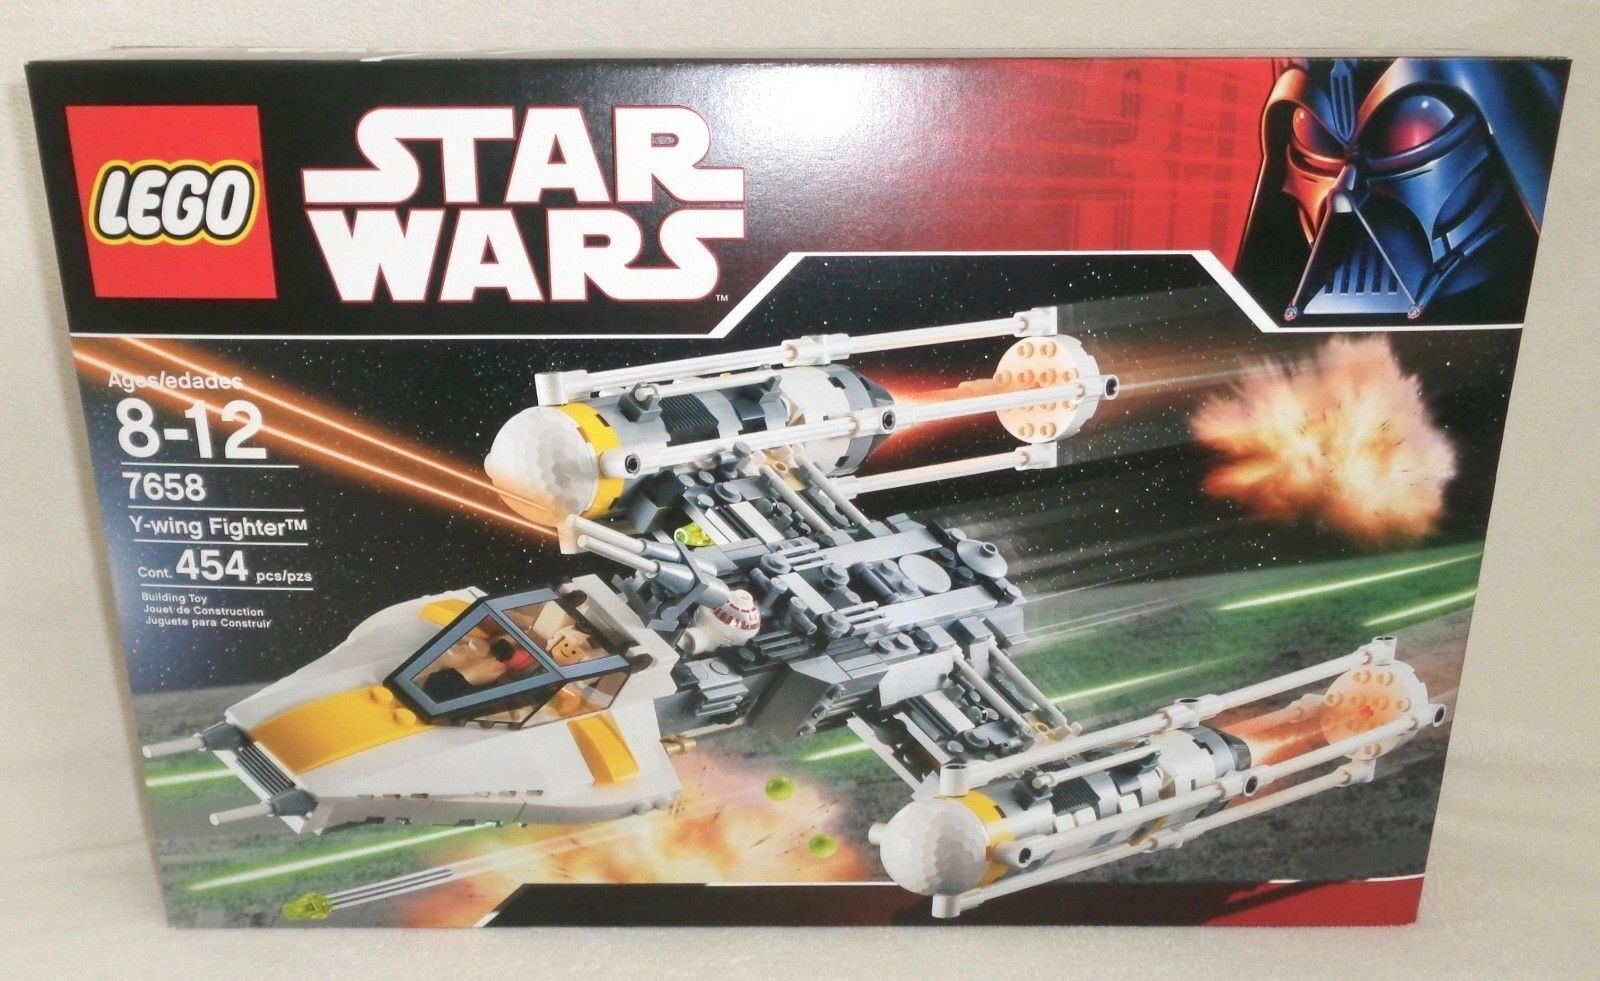 LEGO Star Wars Y-Wing Fighter (7658) Bomber R5-D4 Pilot 2007 BRAND NEW - SEALED